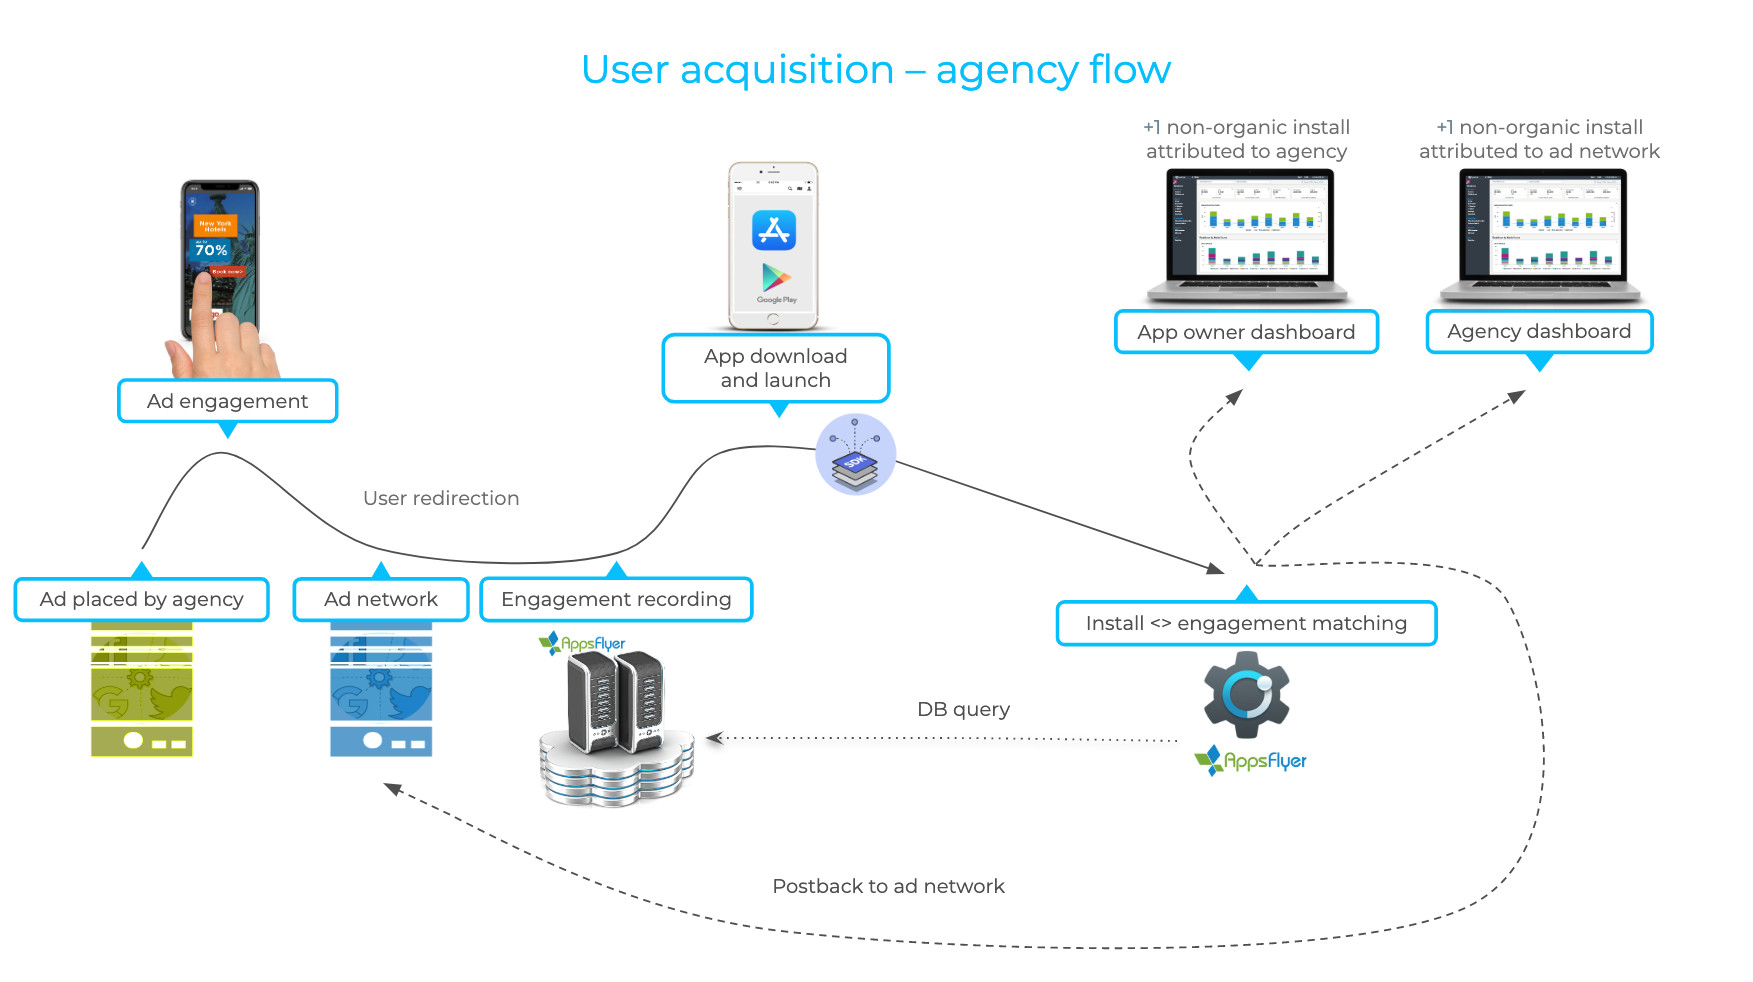 ua-agency-flow.png